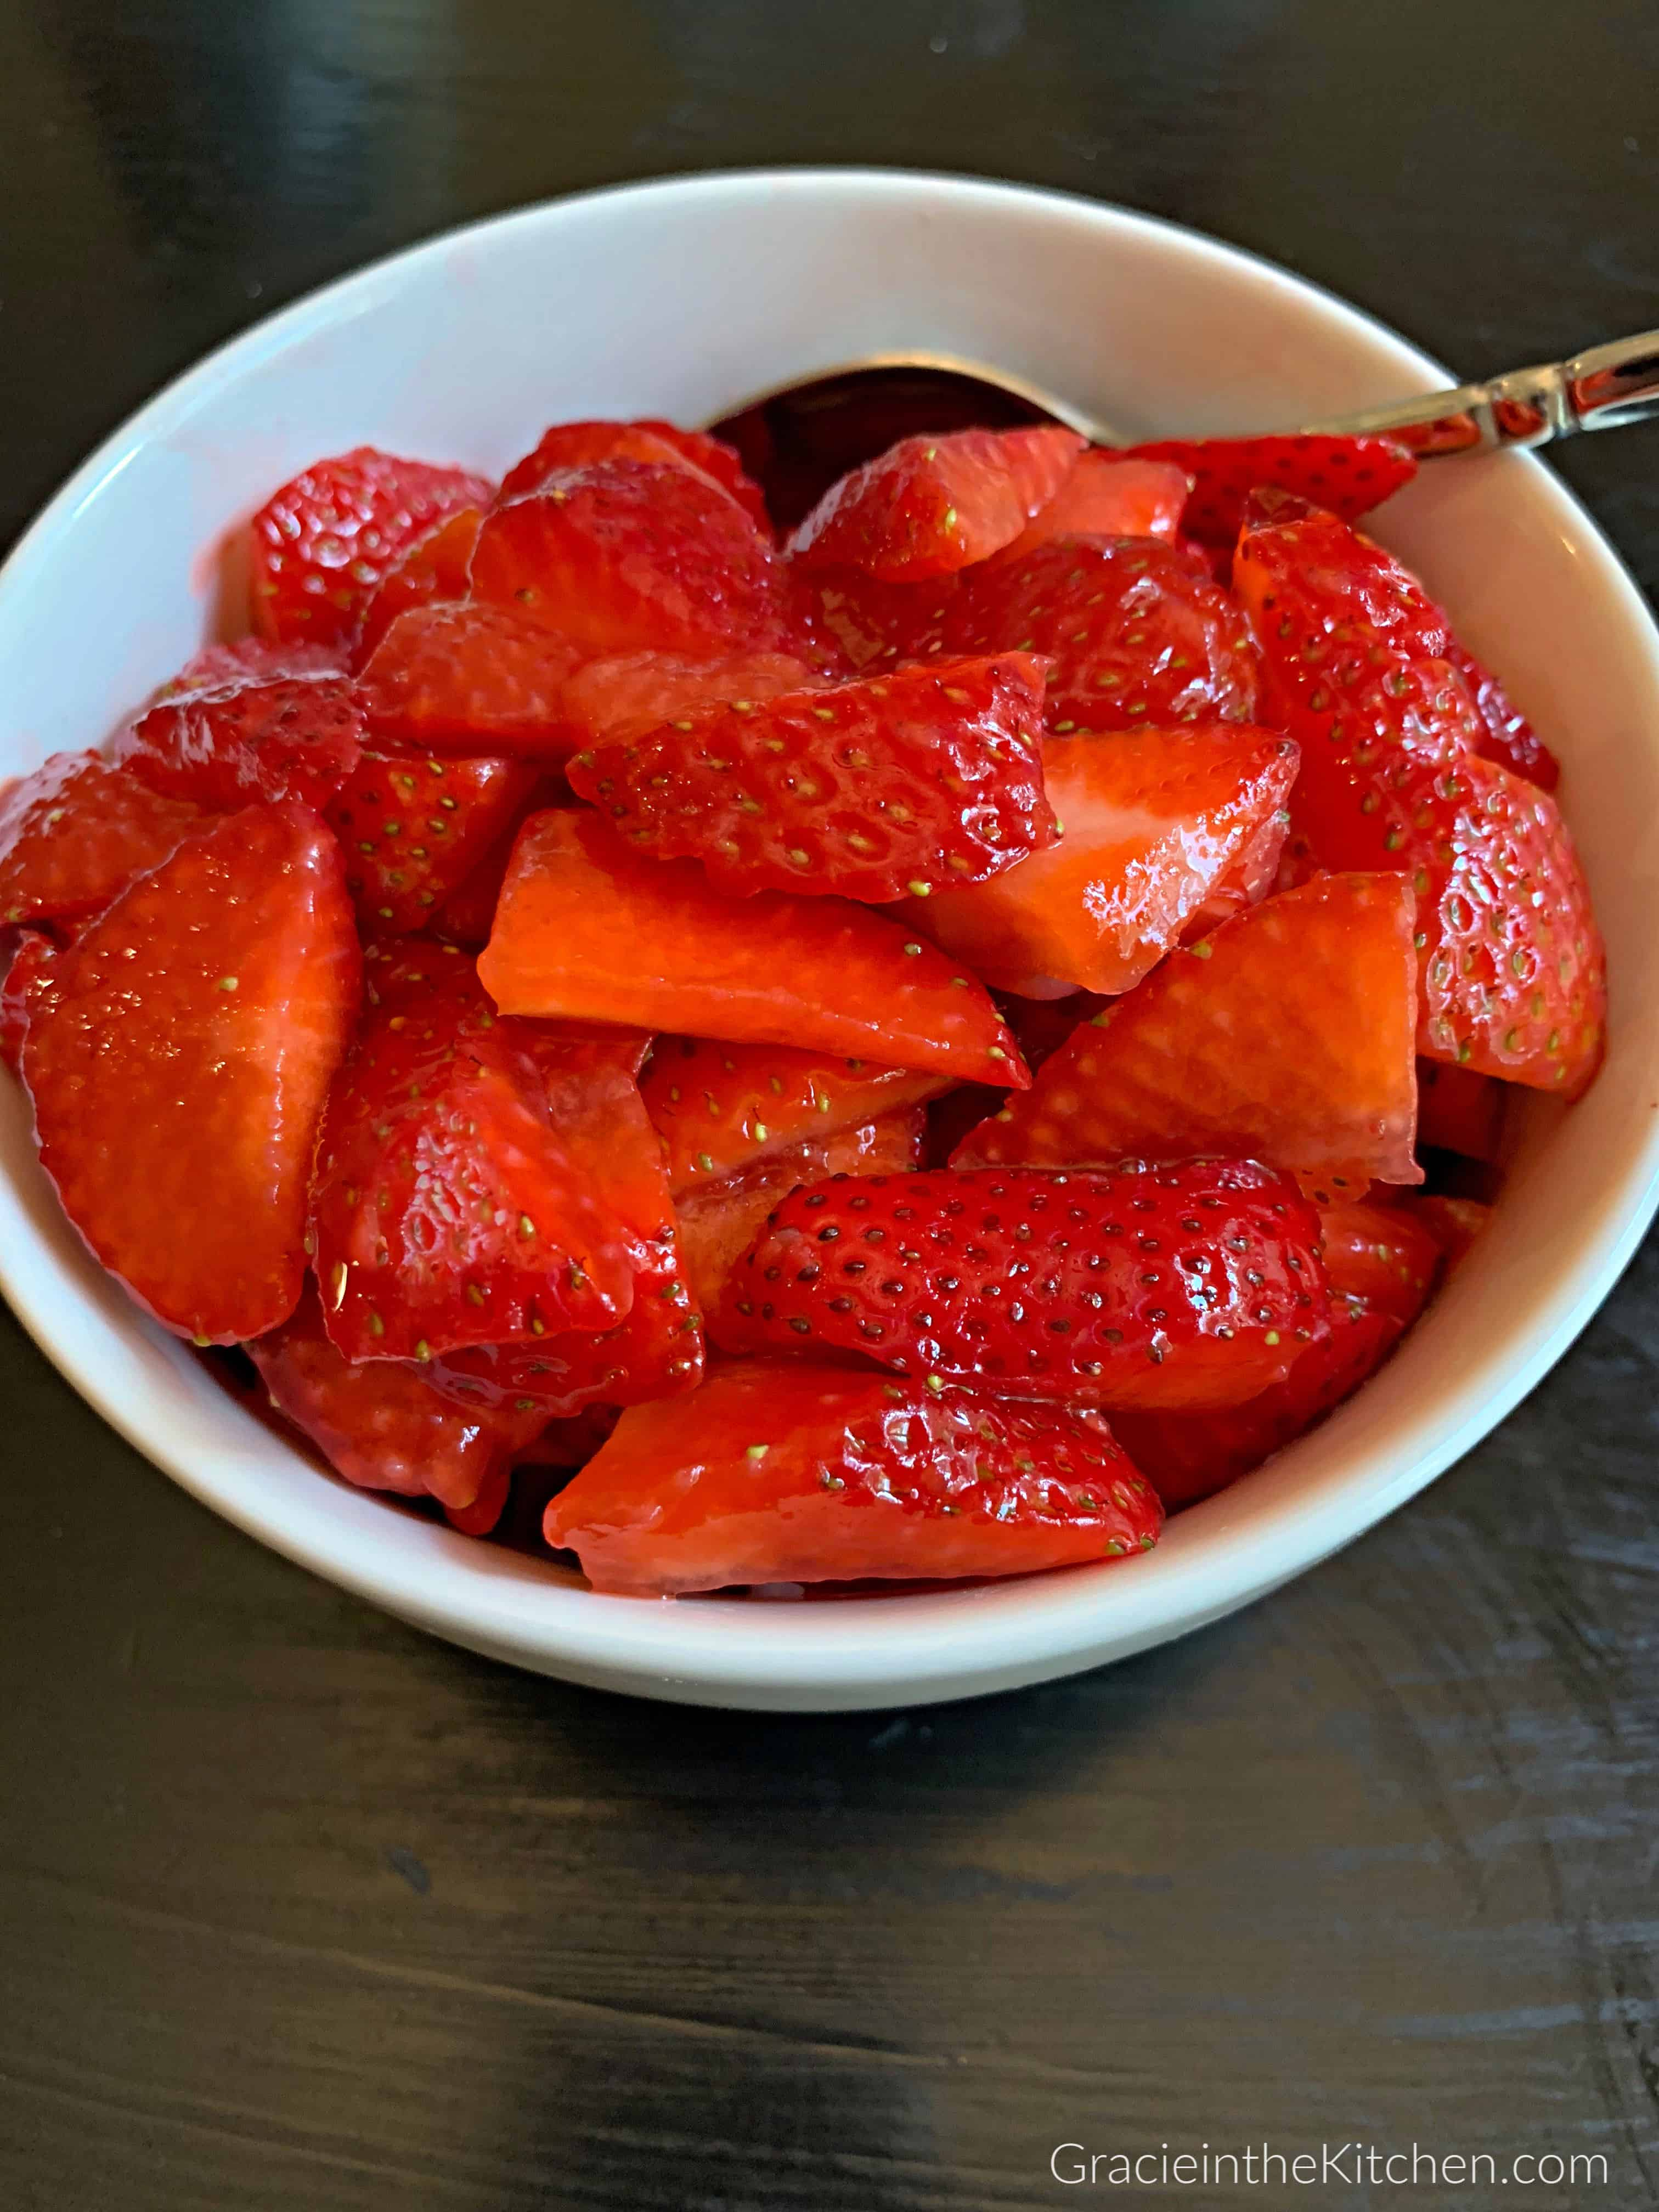 Macerated Strawberries- Such a quick and easy strawberry topping!